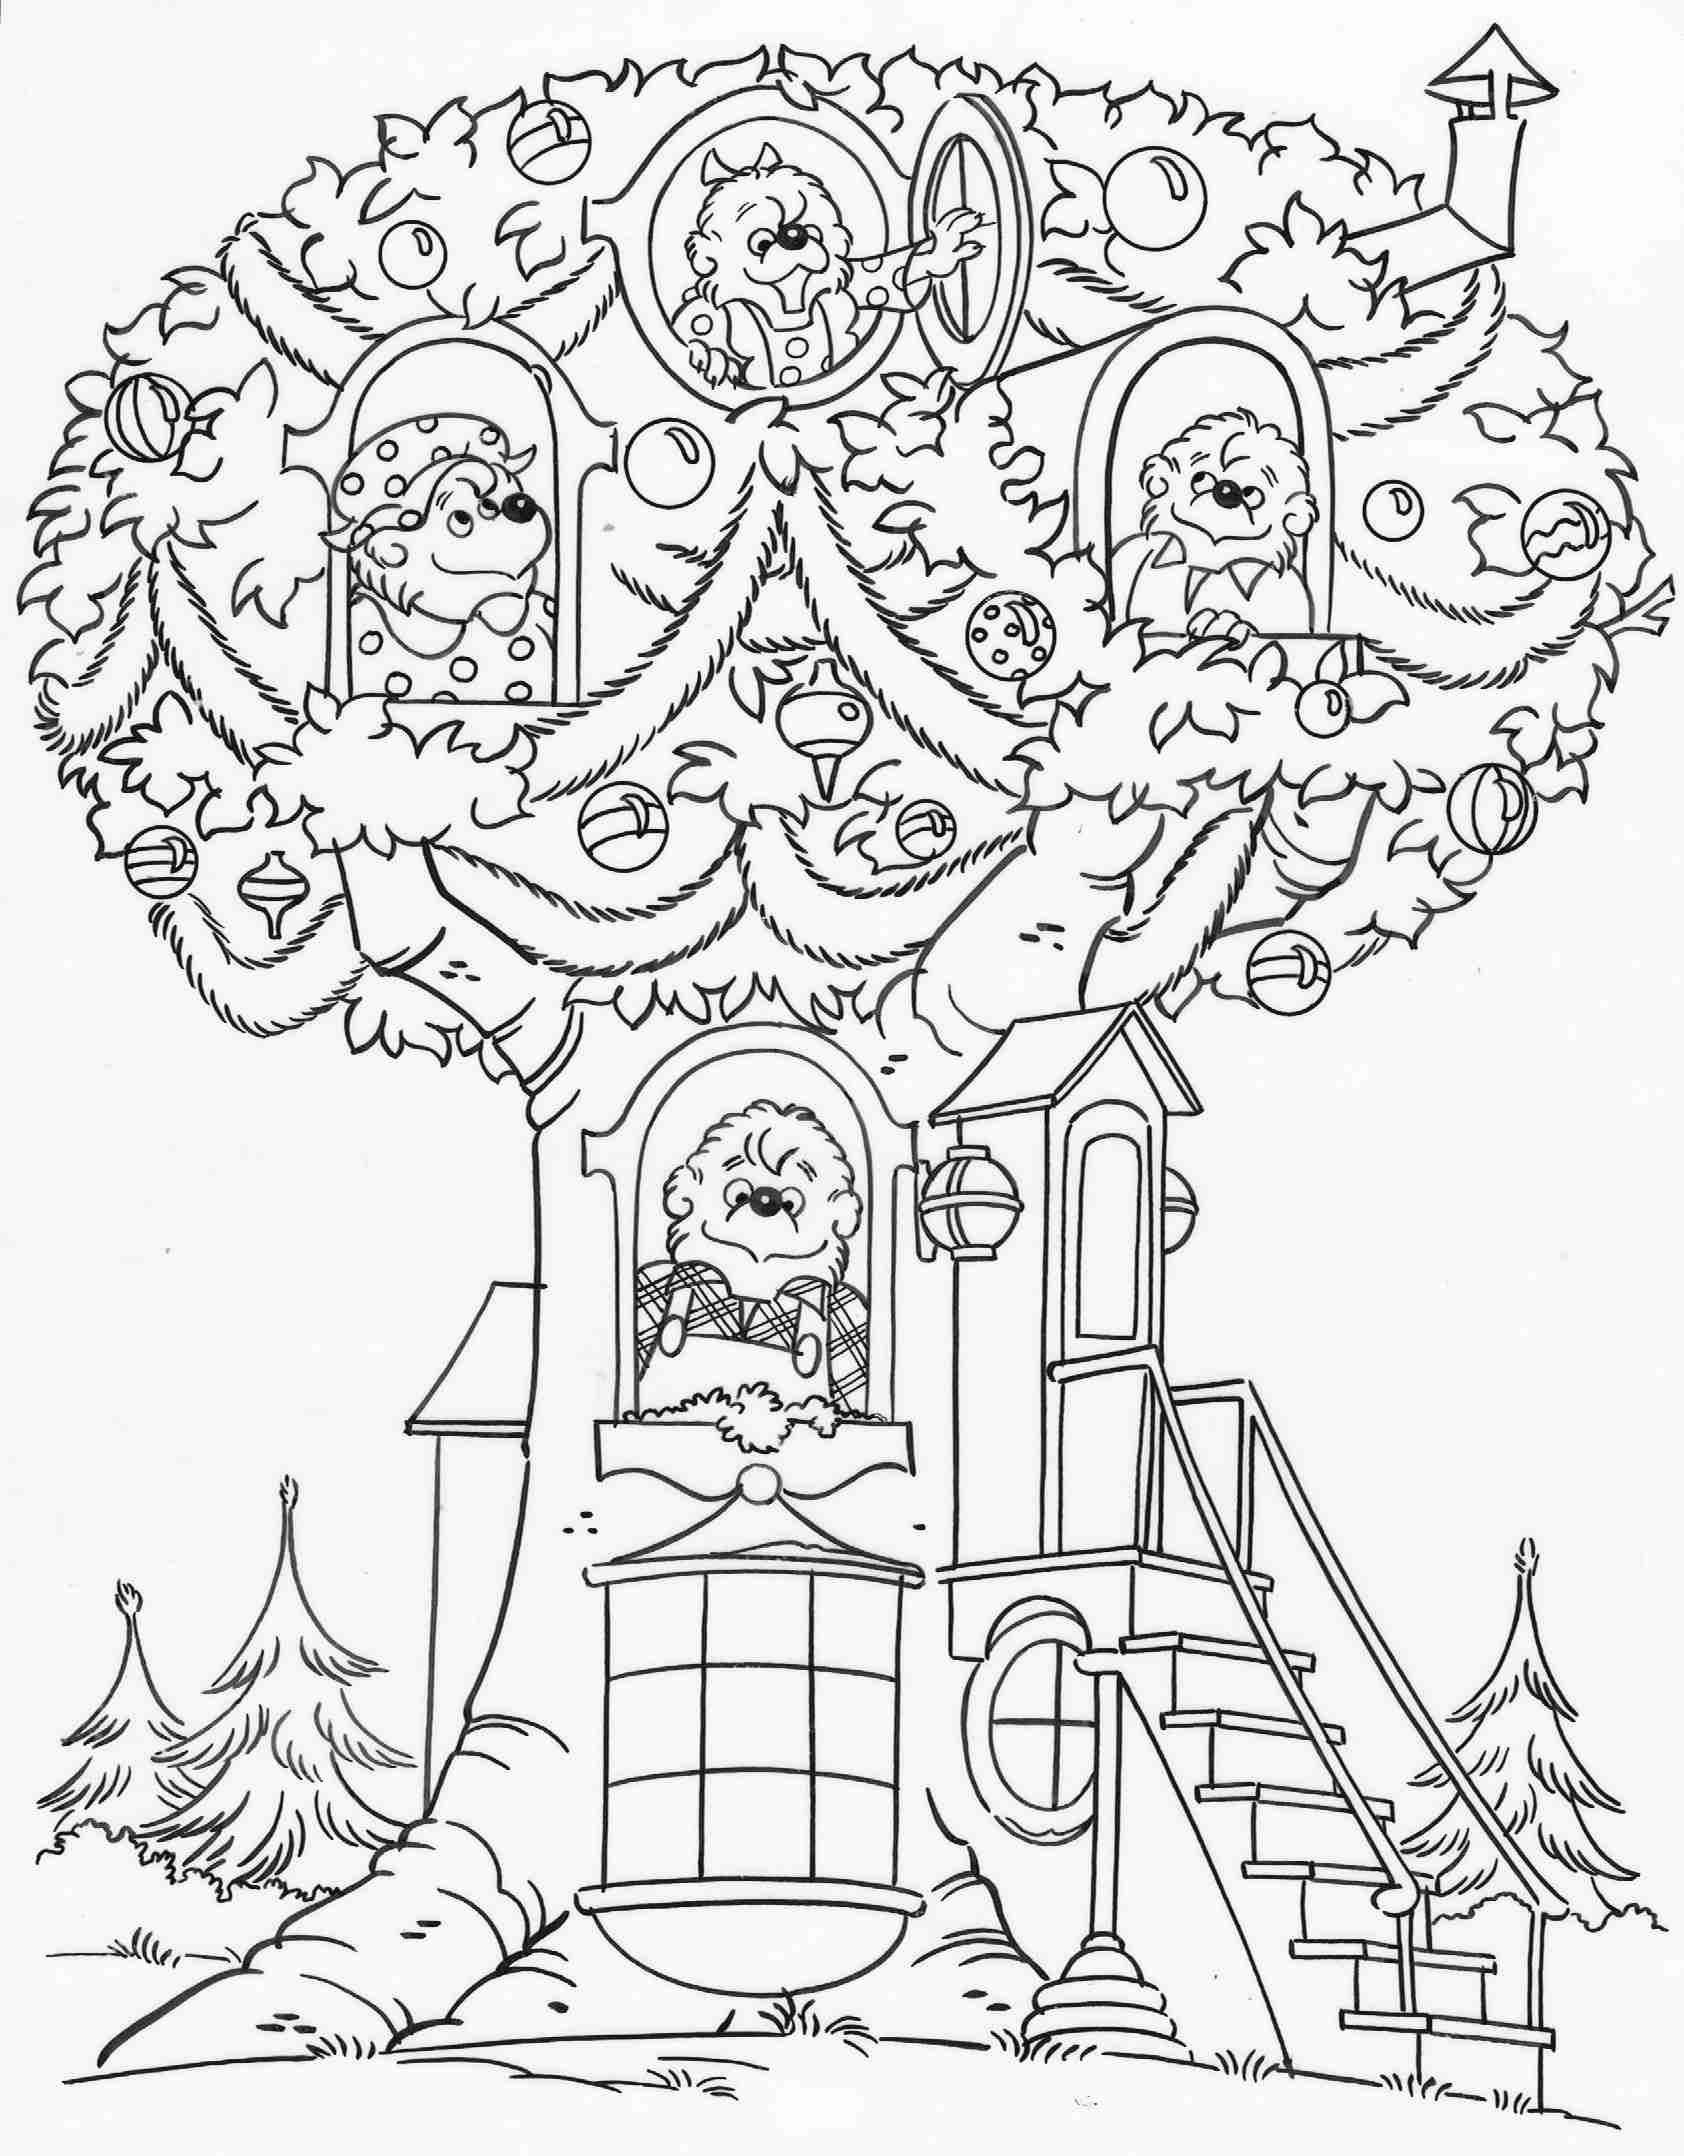 berenstain bears coloring pages berenstain bears coloring pages at getcoloringscom free bears pages coloring berenstain